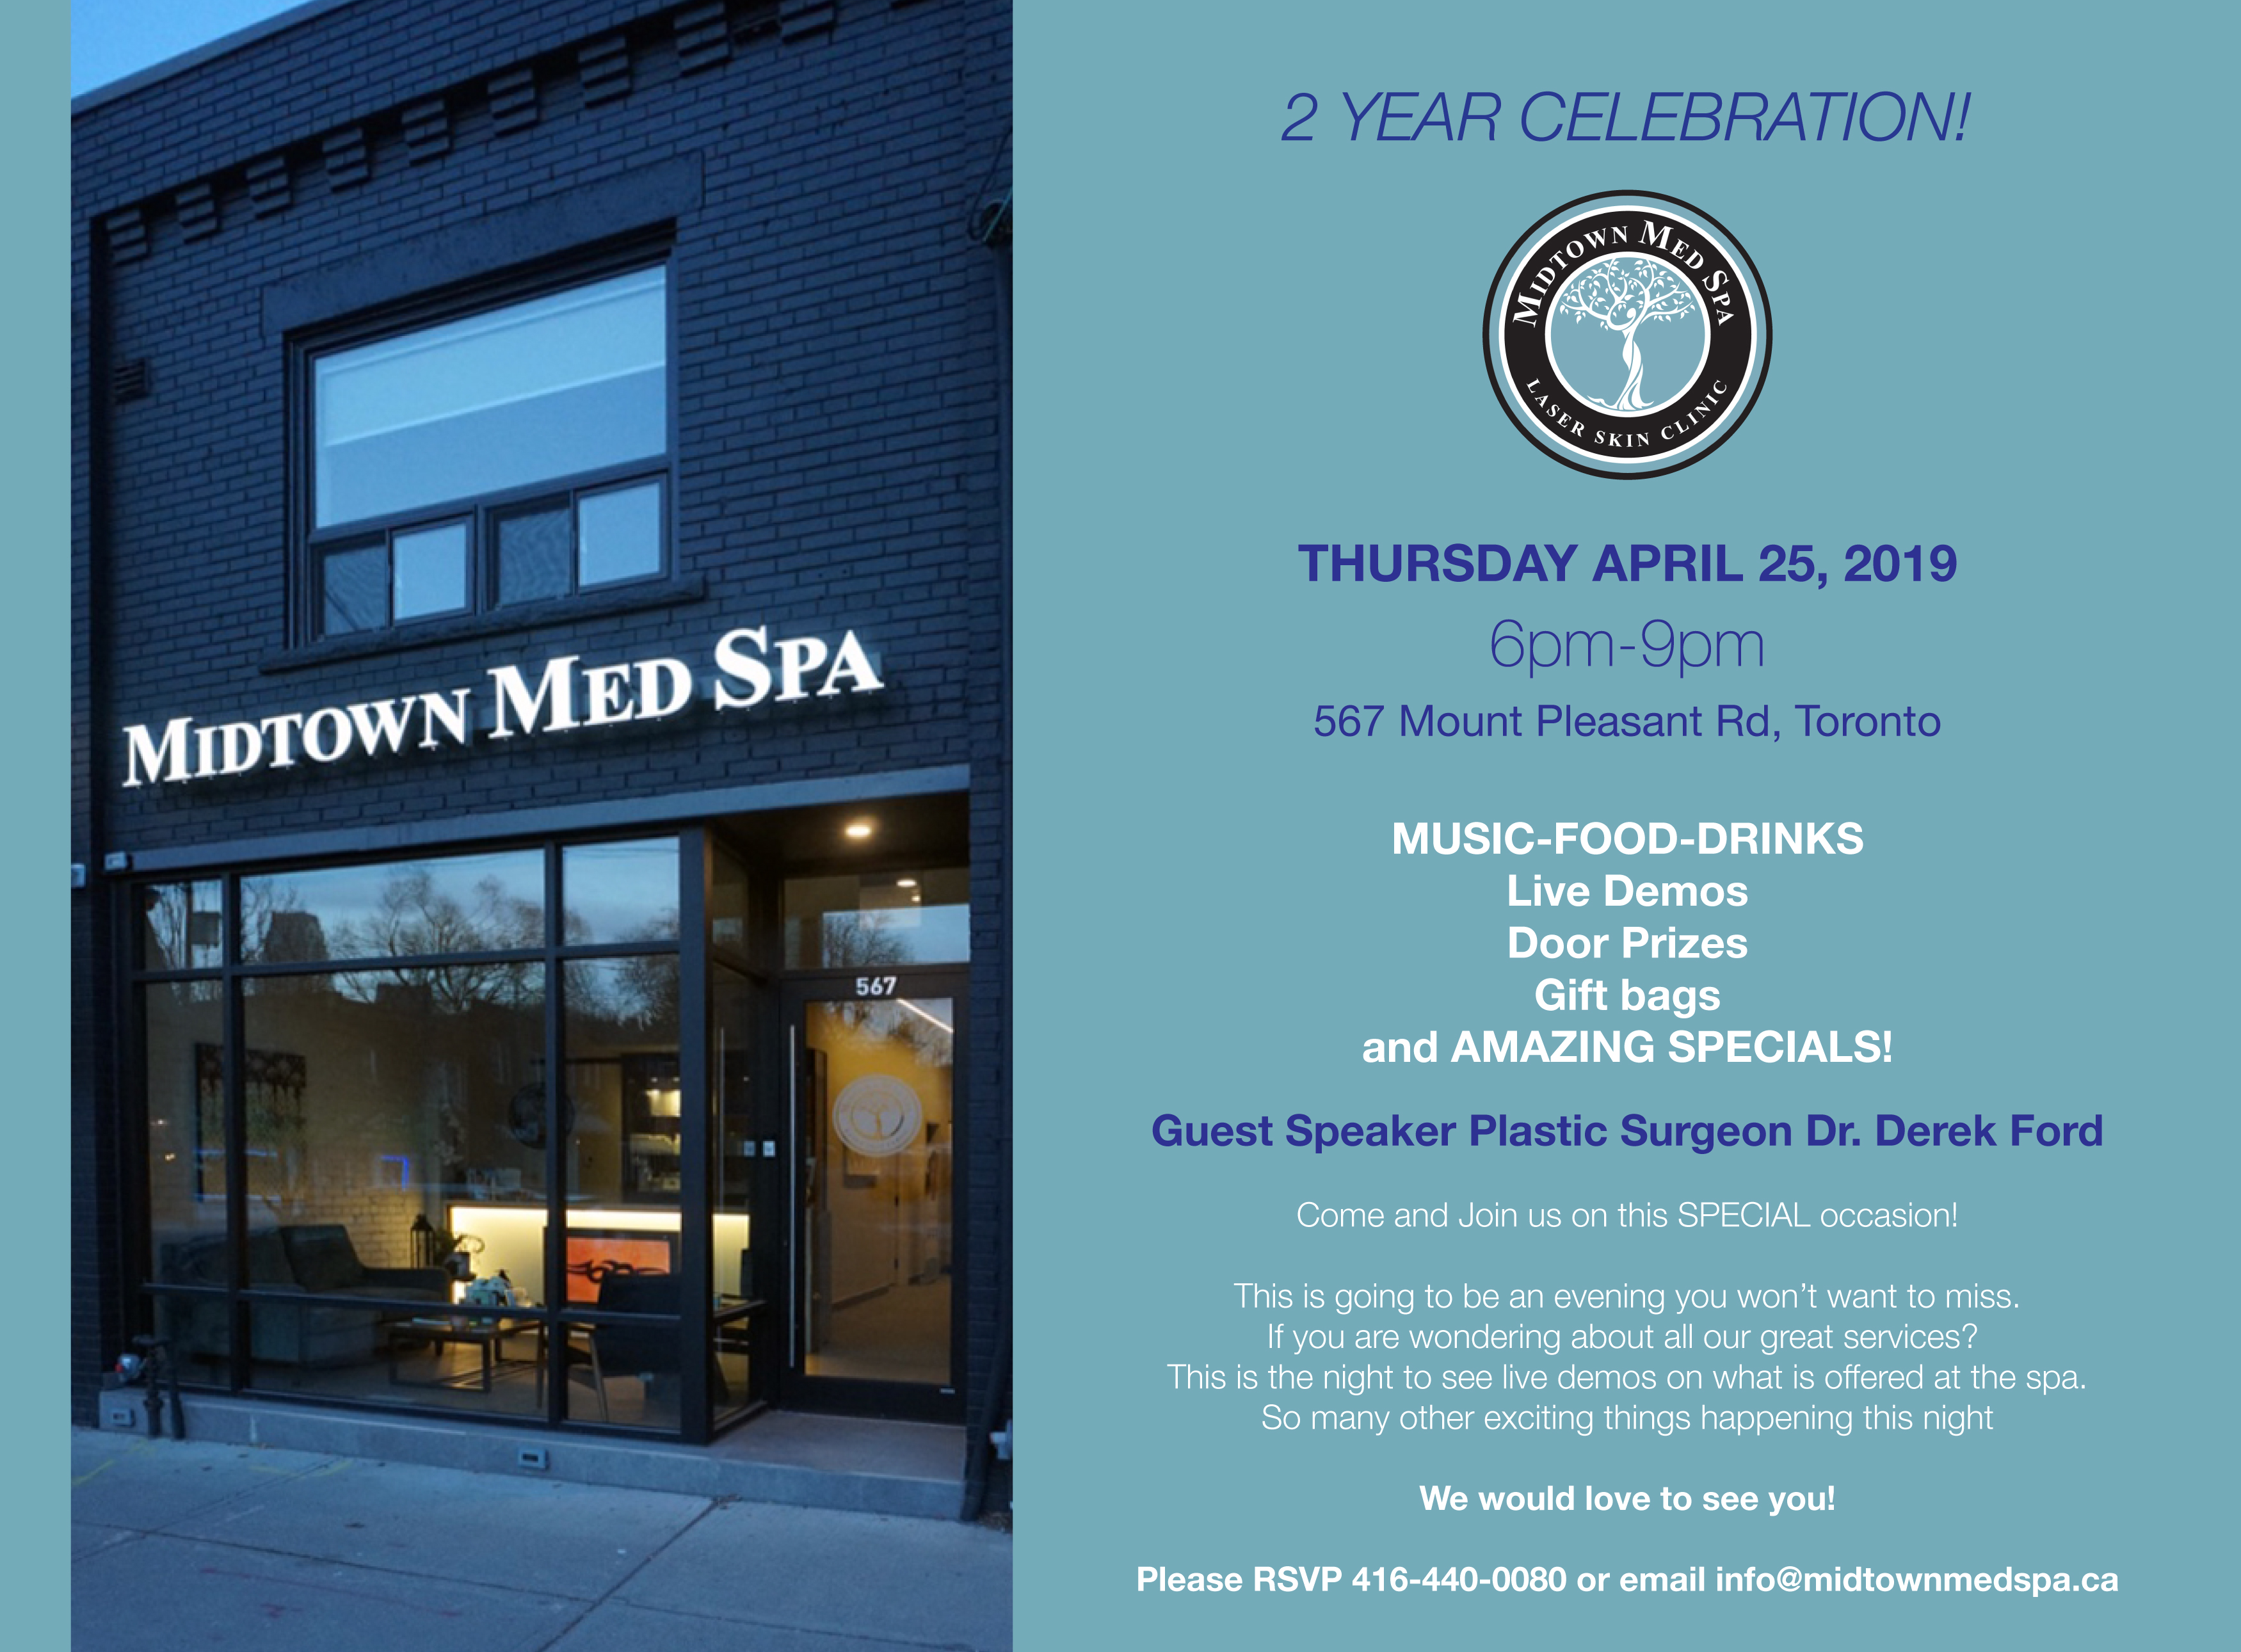 Midtown Med Spa 2 Year Celebration